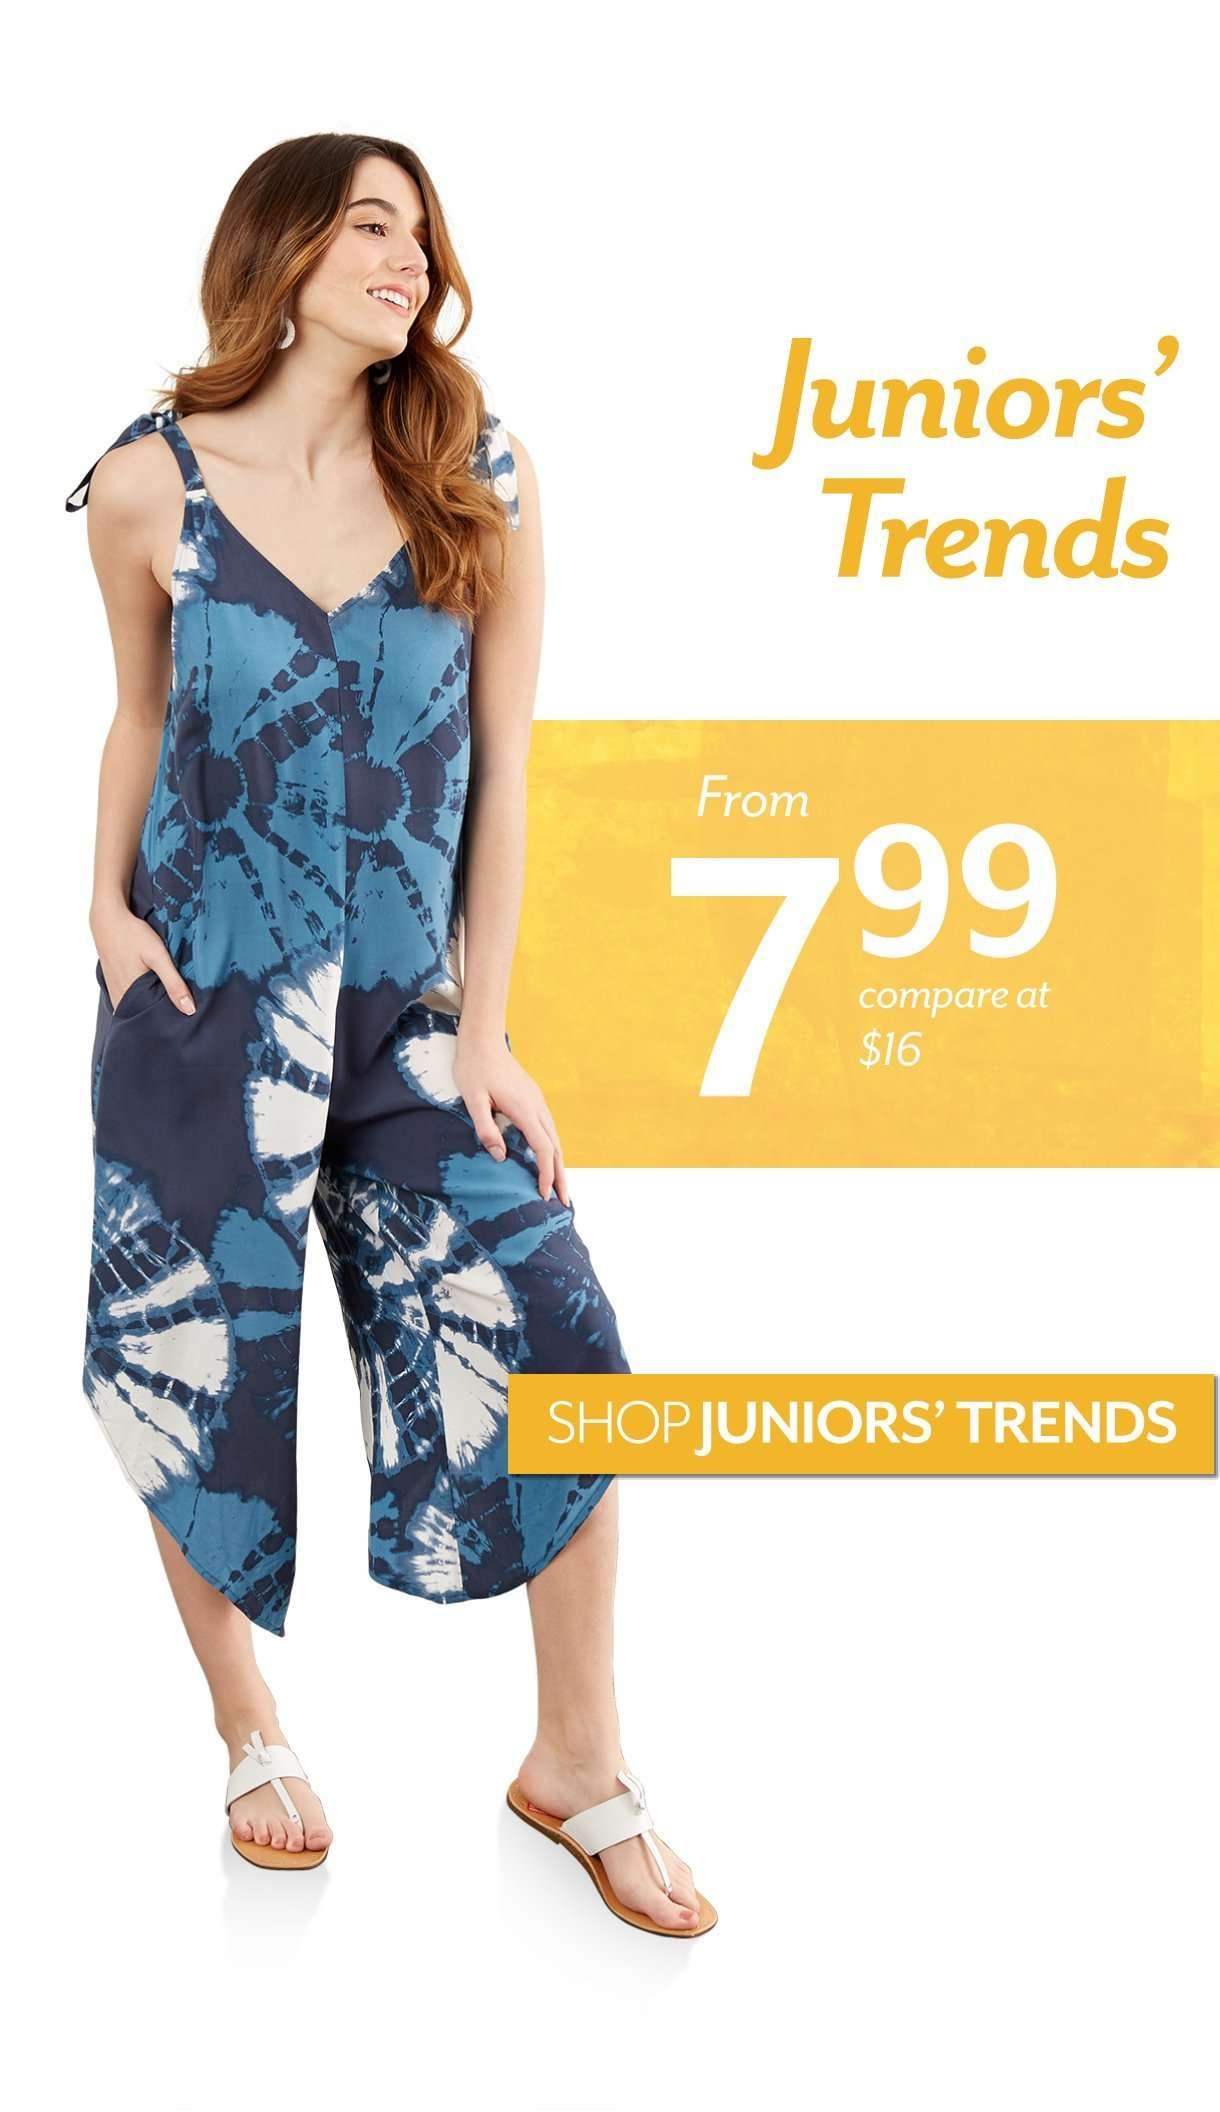 Juniors' Trends starting at $7.99